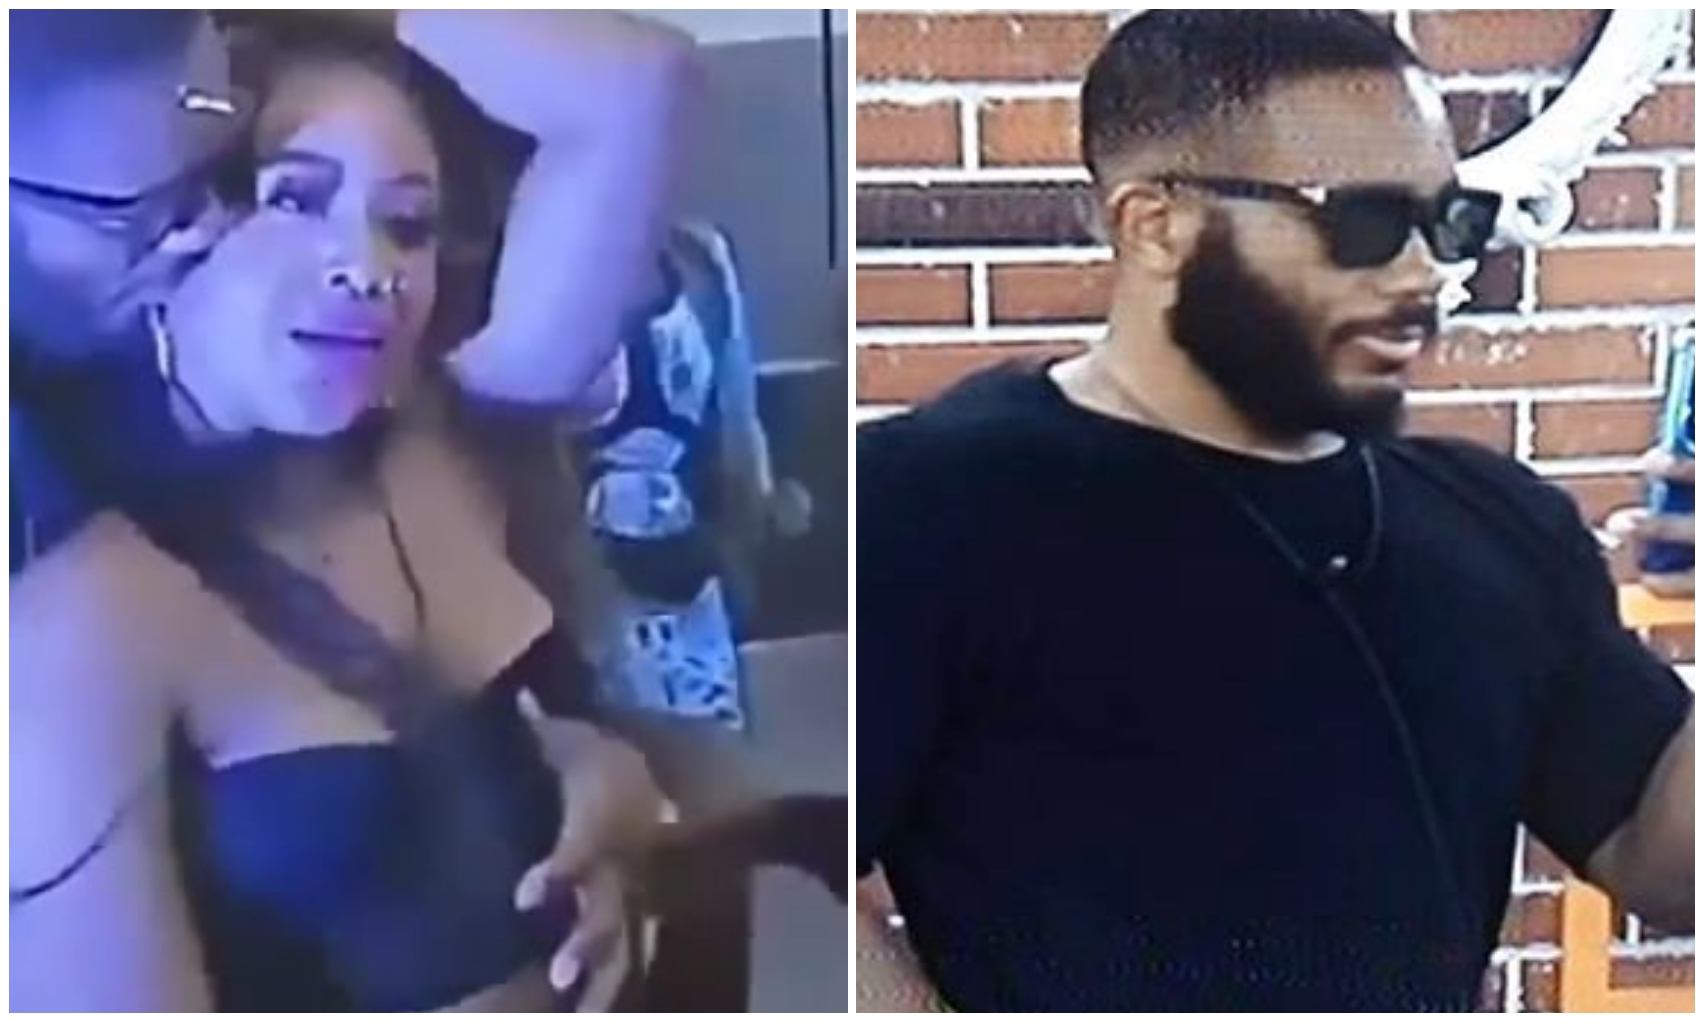 #BBNaija: Moment Kiddwaya fondled Erica's b*obs as she refrain (Video)  - PhotoGridLite 1595742629903 - #BBNaija: Kiddwaya kiss Erica passionately days after he tried to fondle her b*obs (Video)